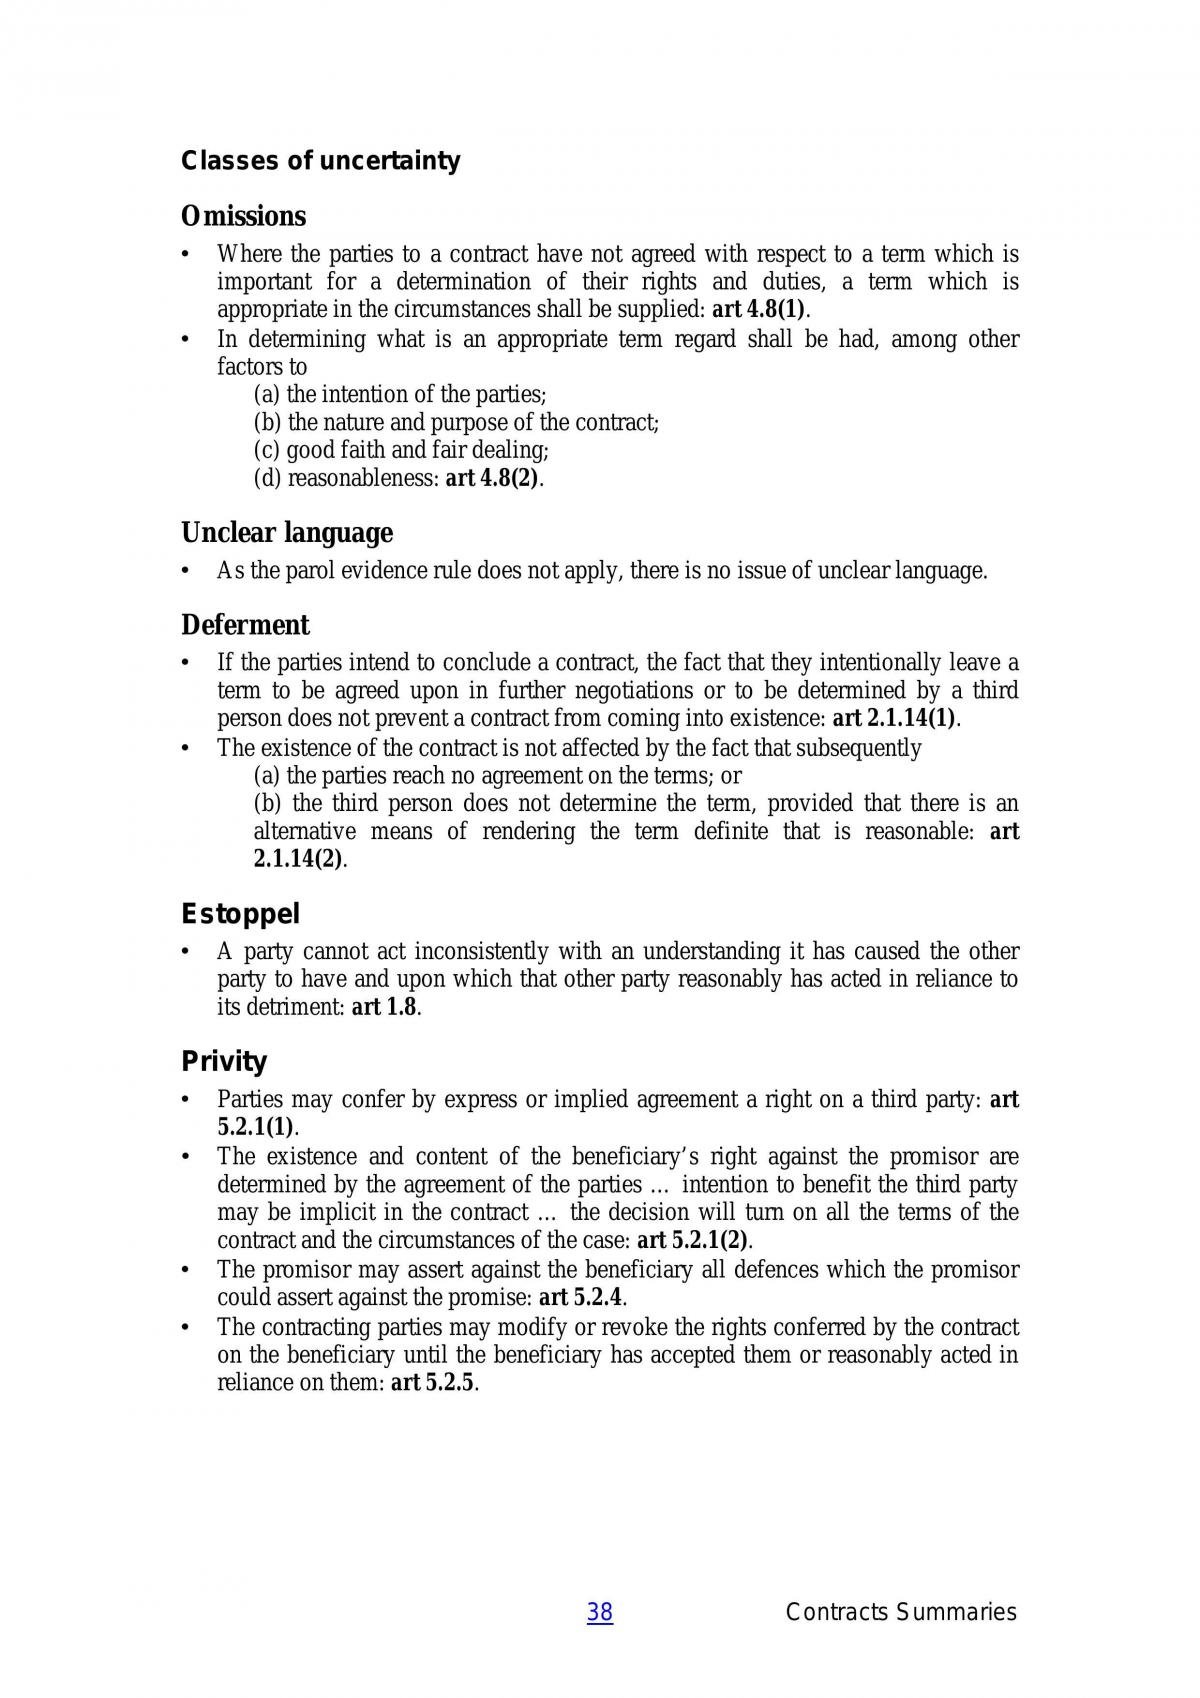 2005 Contracts - Page 38